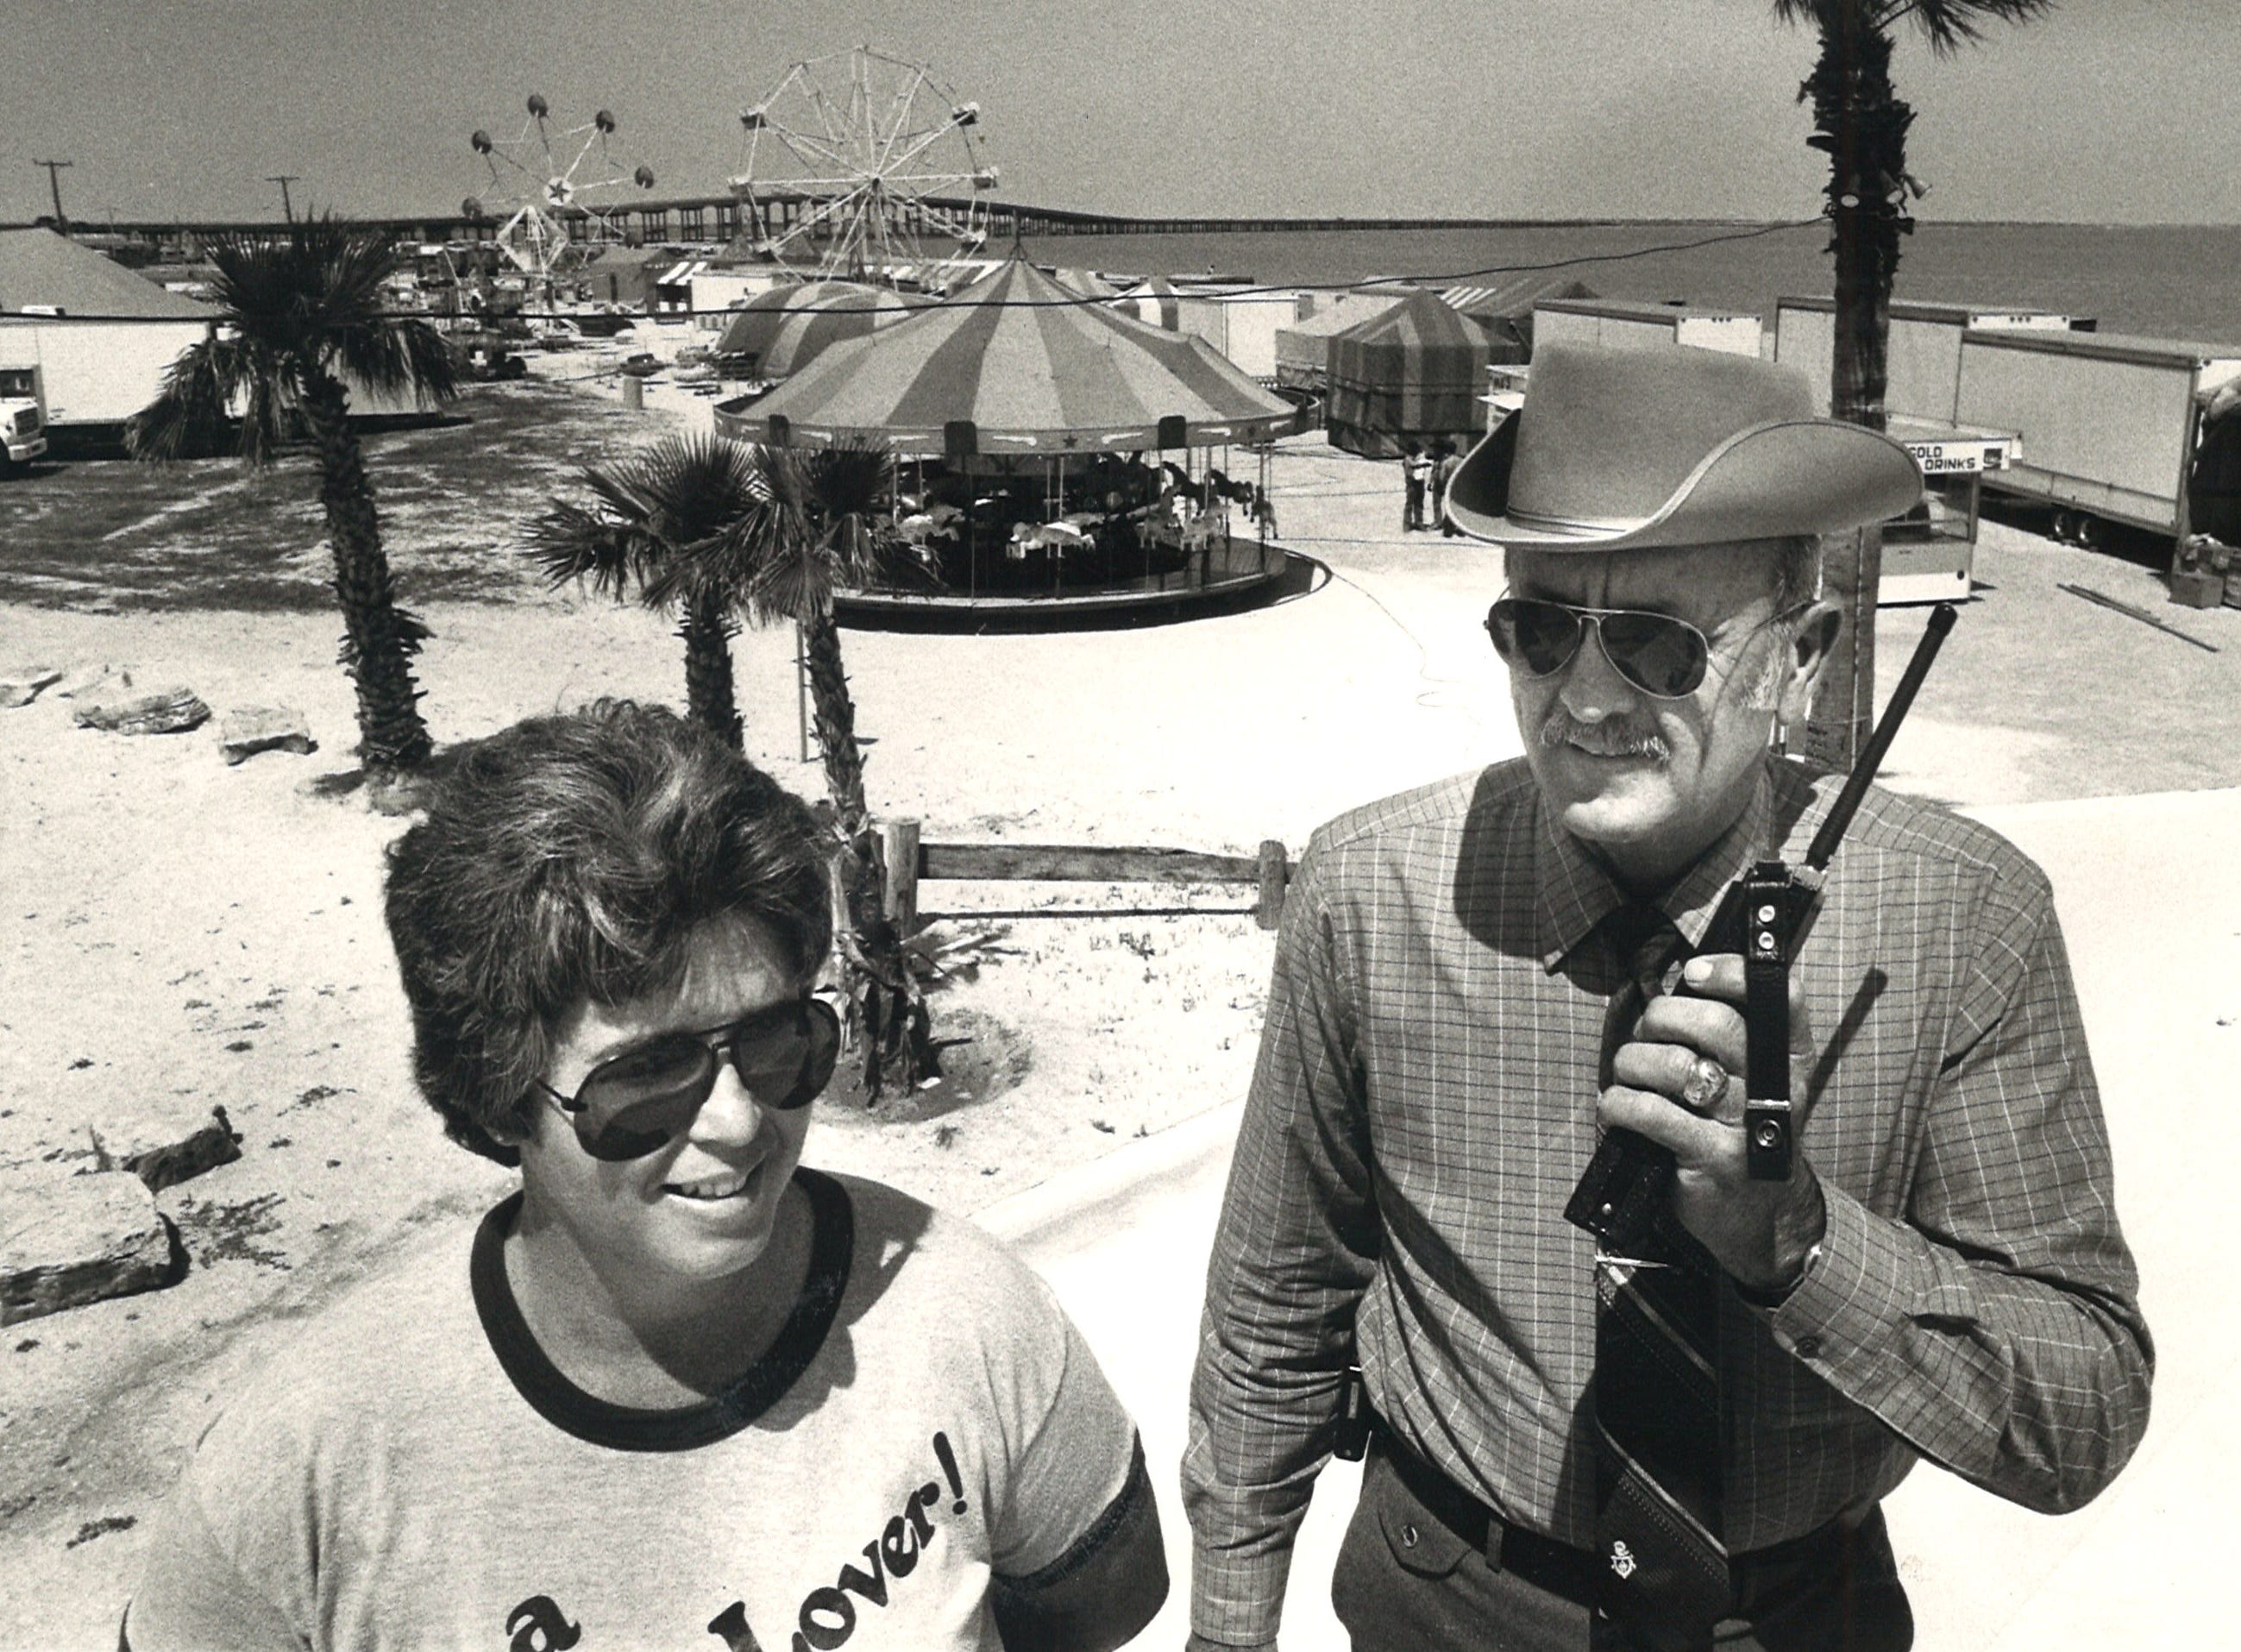 Sisu Morris, left, director of recreation centers, and Ken Krenek, director of parks, prepare for the activities with Beach Party on Corpus Christi's North Beach on April 8, 1983.